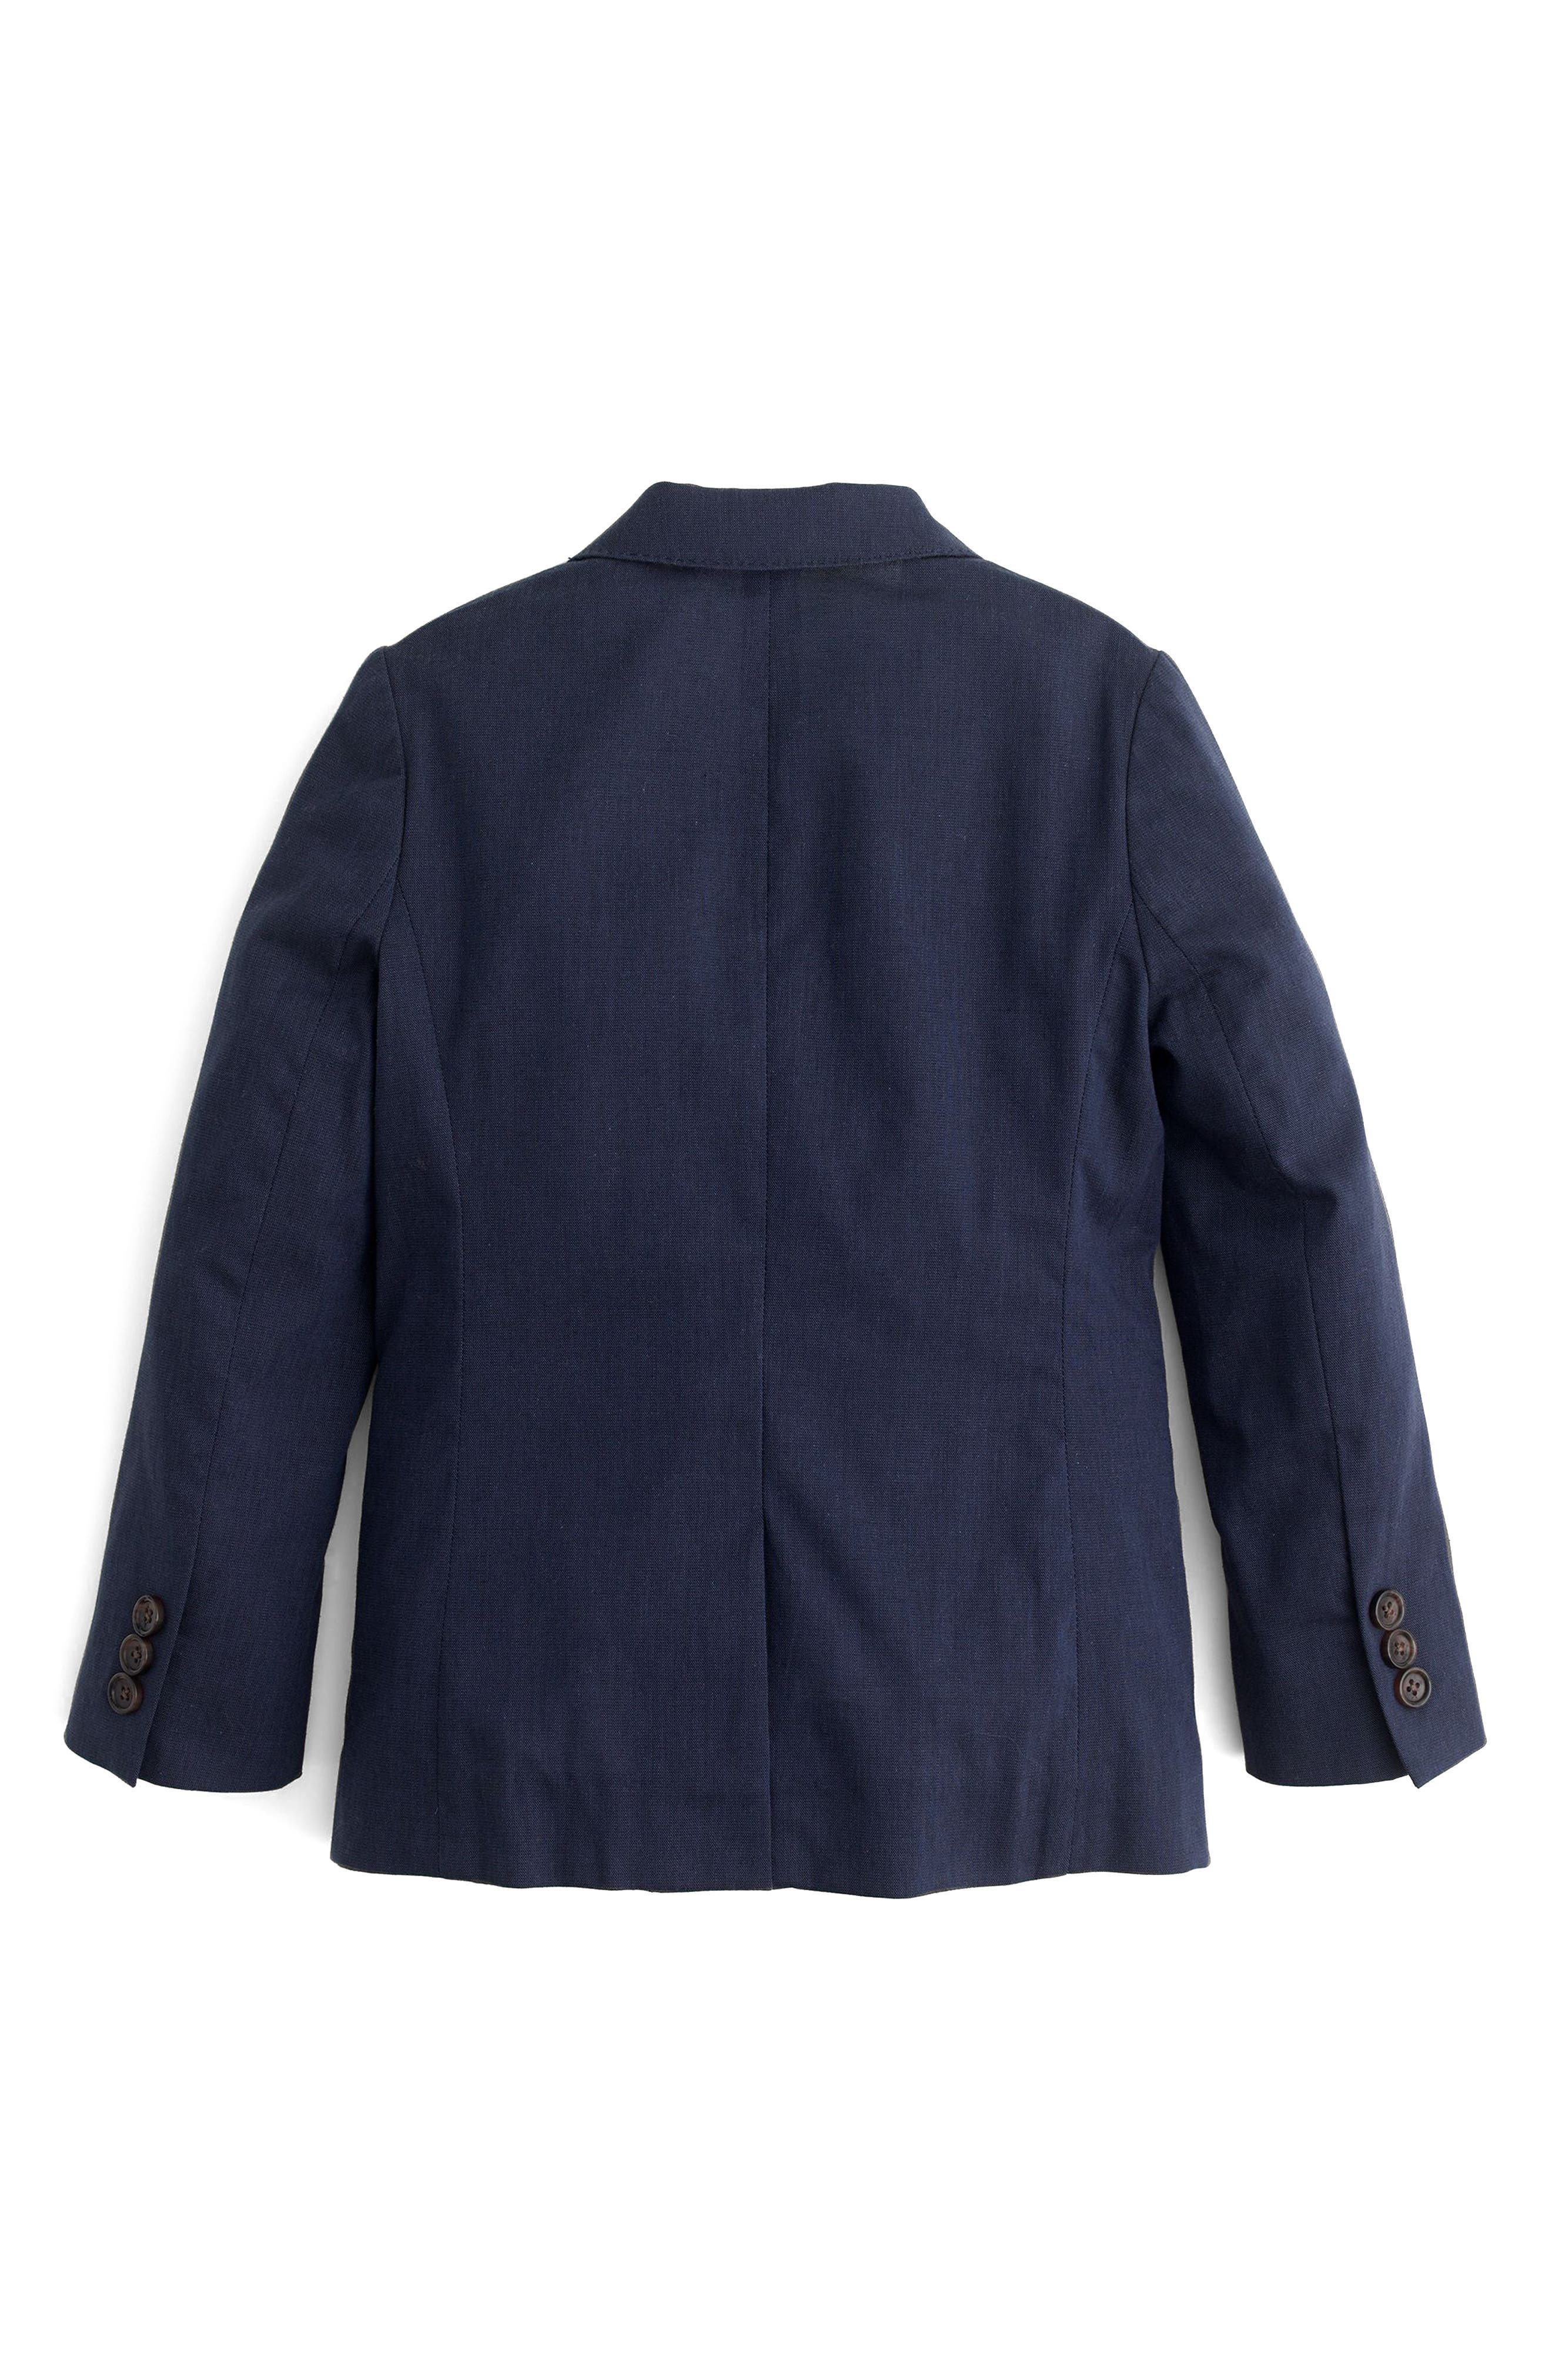 Ludlow Unstructured Suit Jacket,                             Alternate thumbnail 2, color,                             Navy